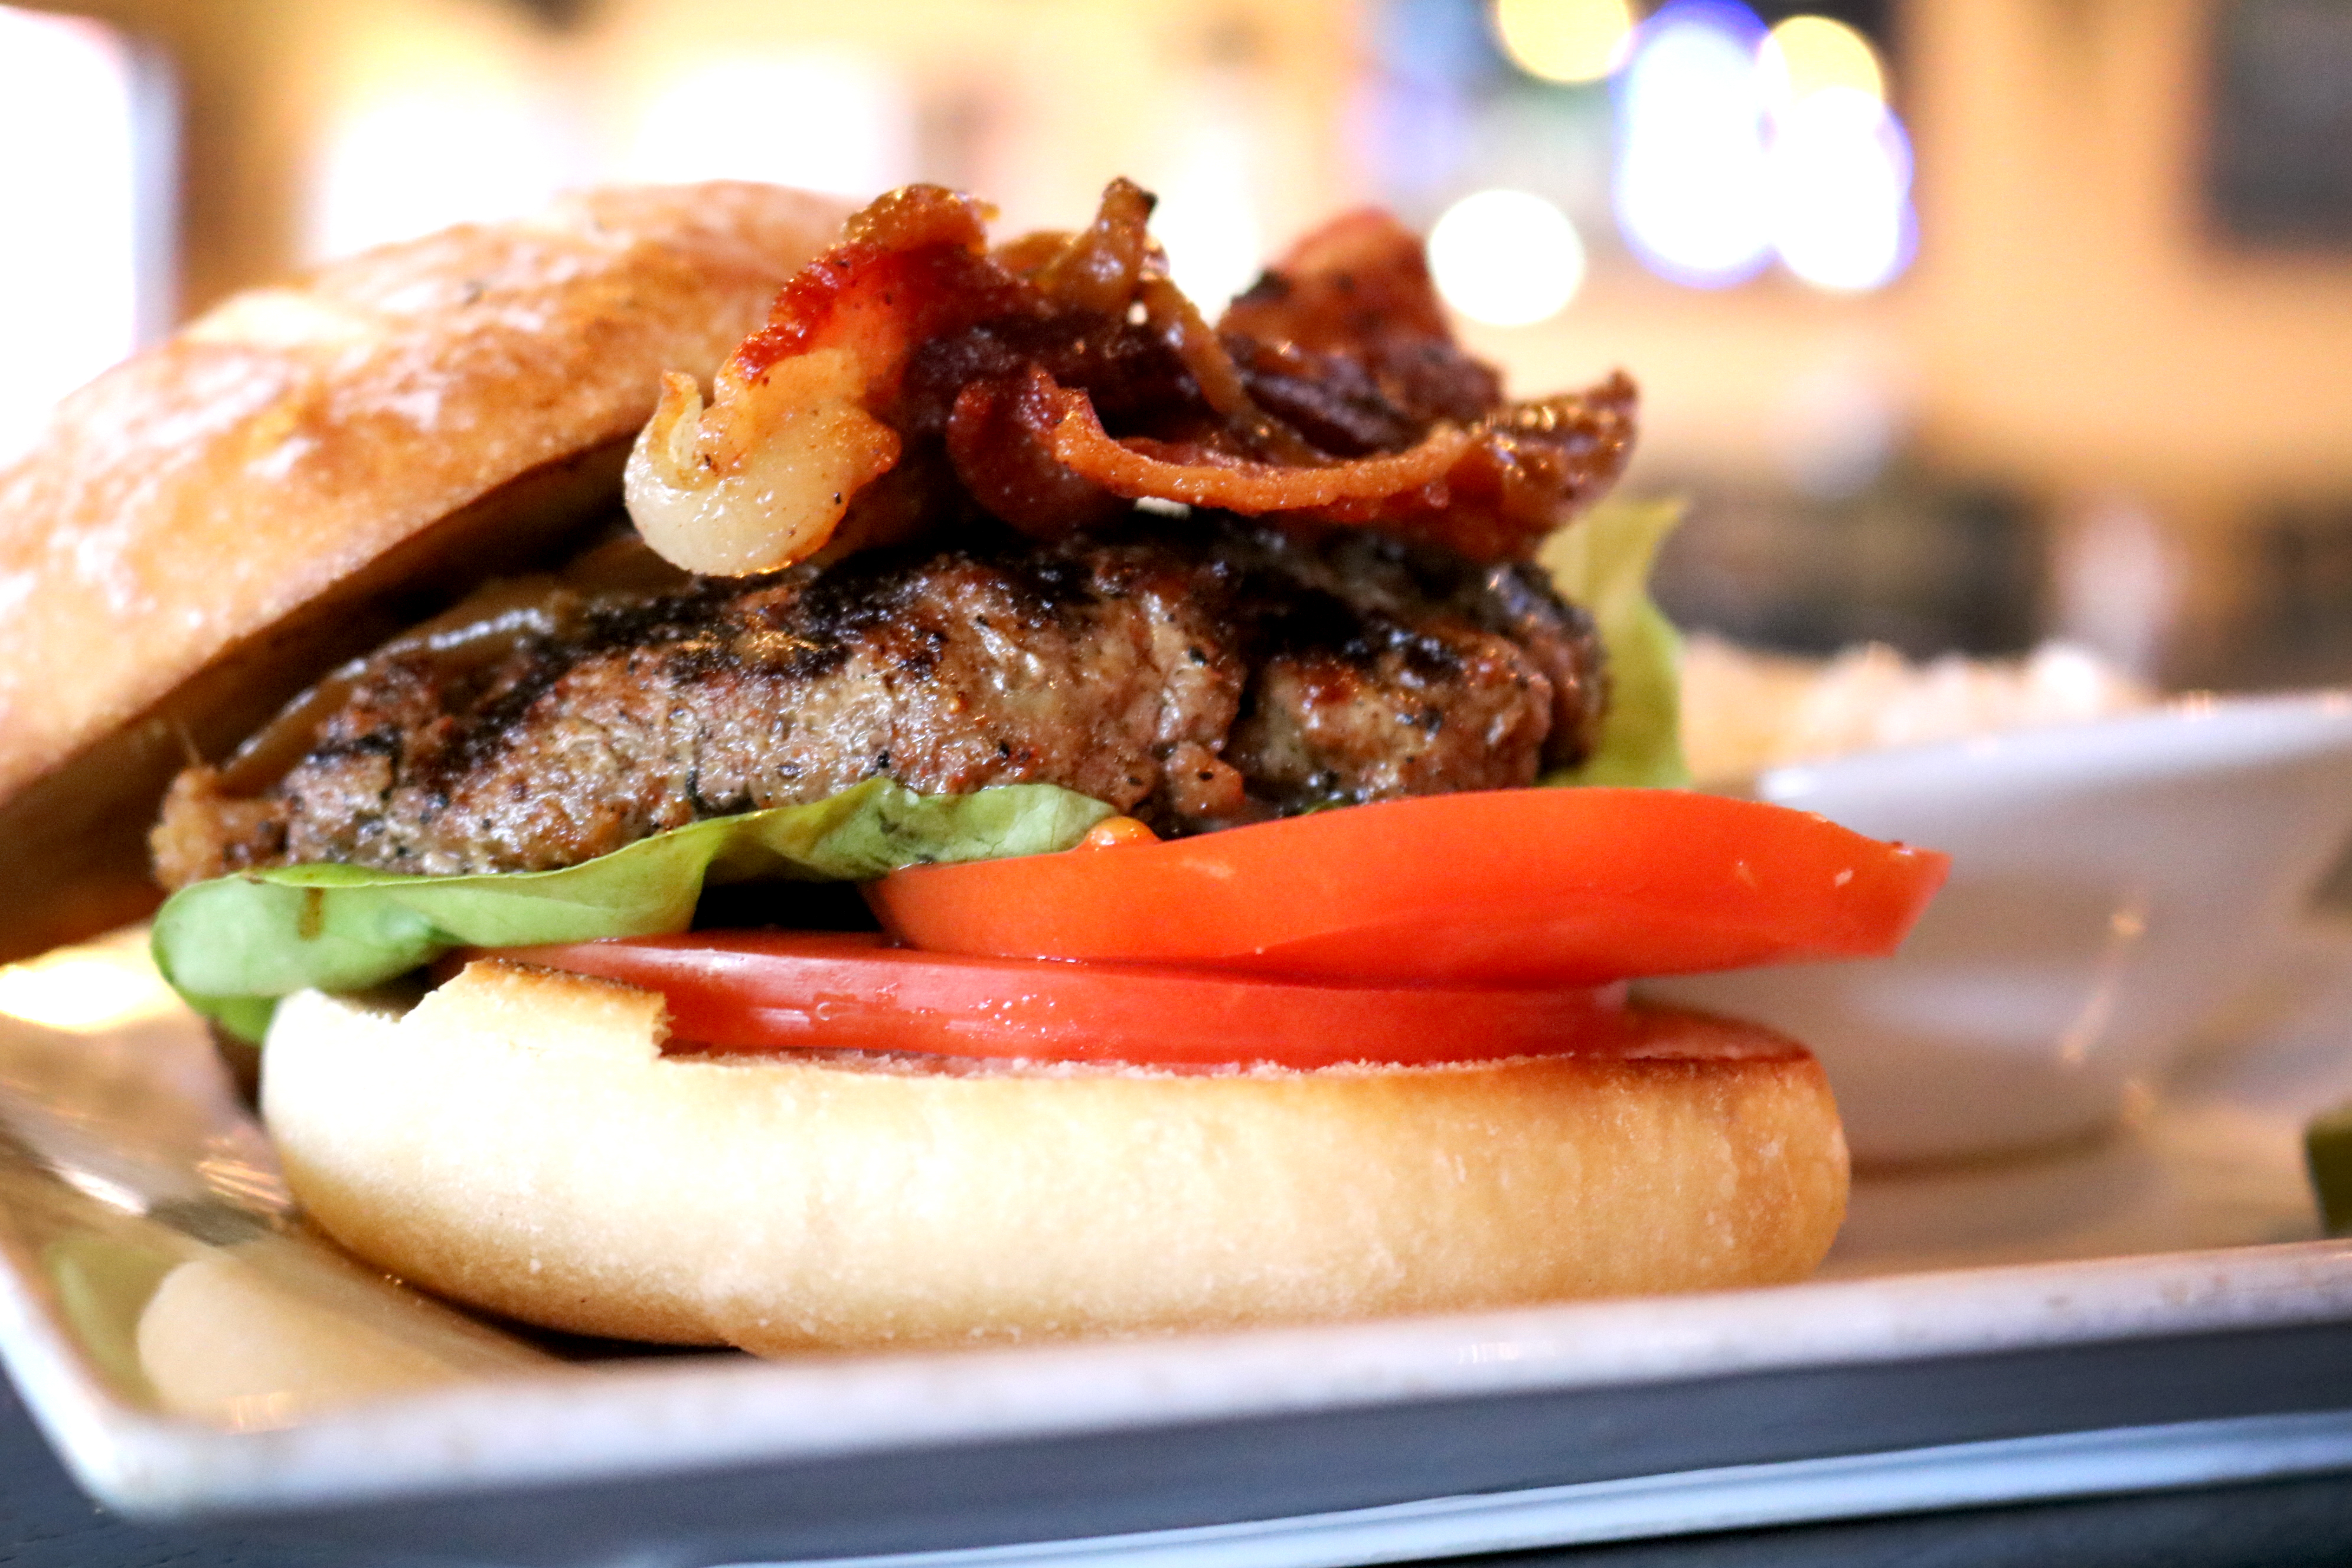 Enjoy one of our premium burgers with handmade 7oz. patties!